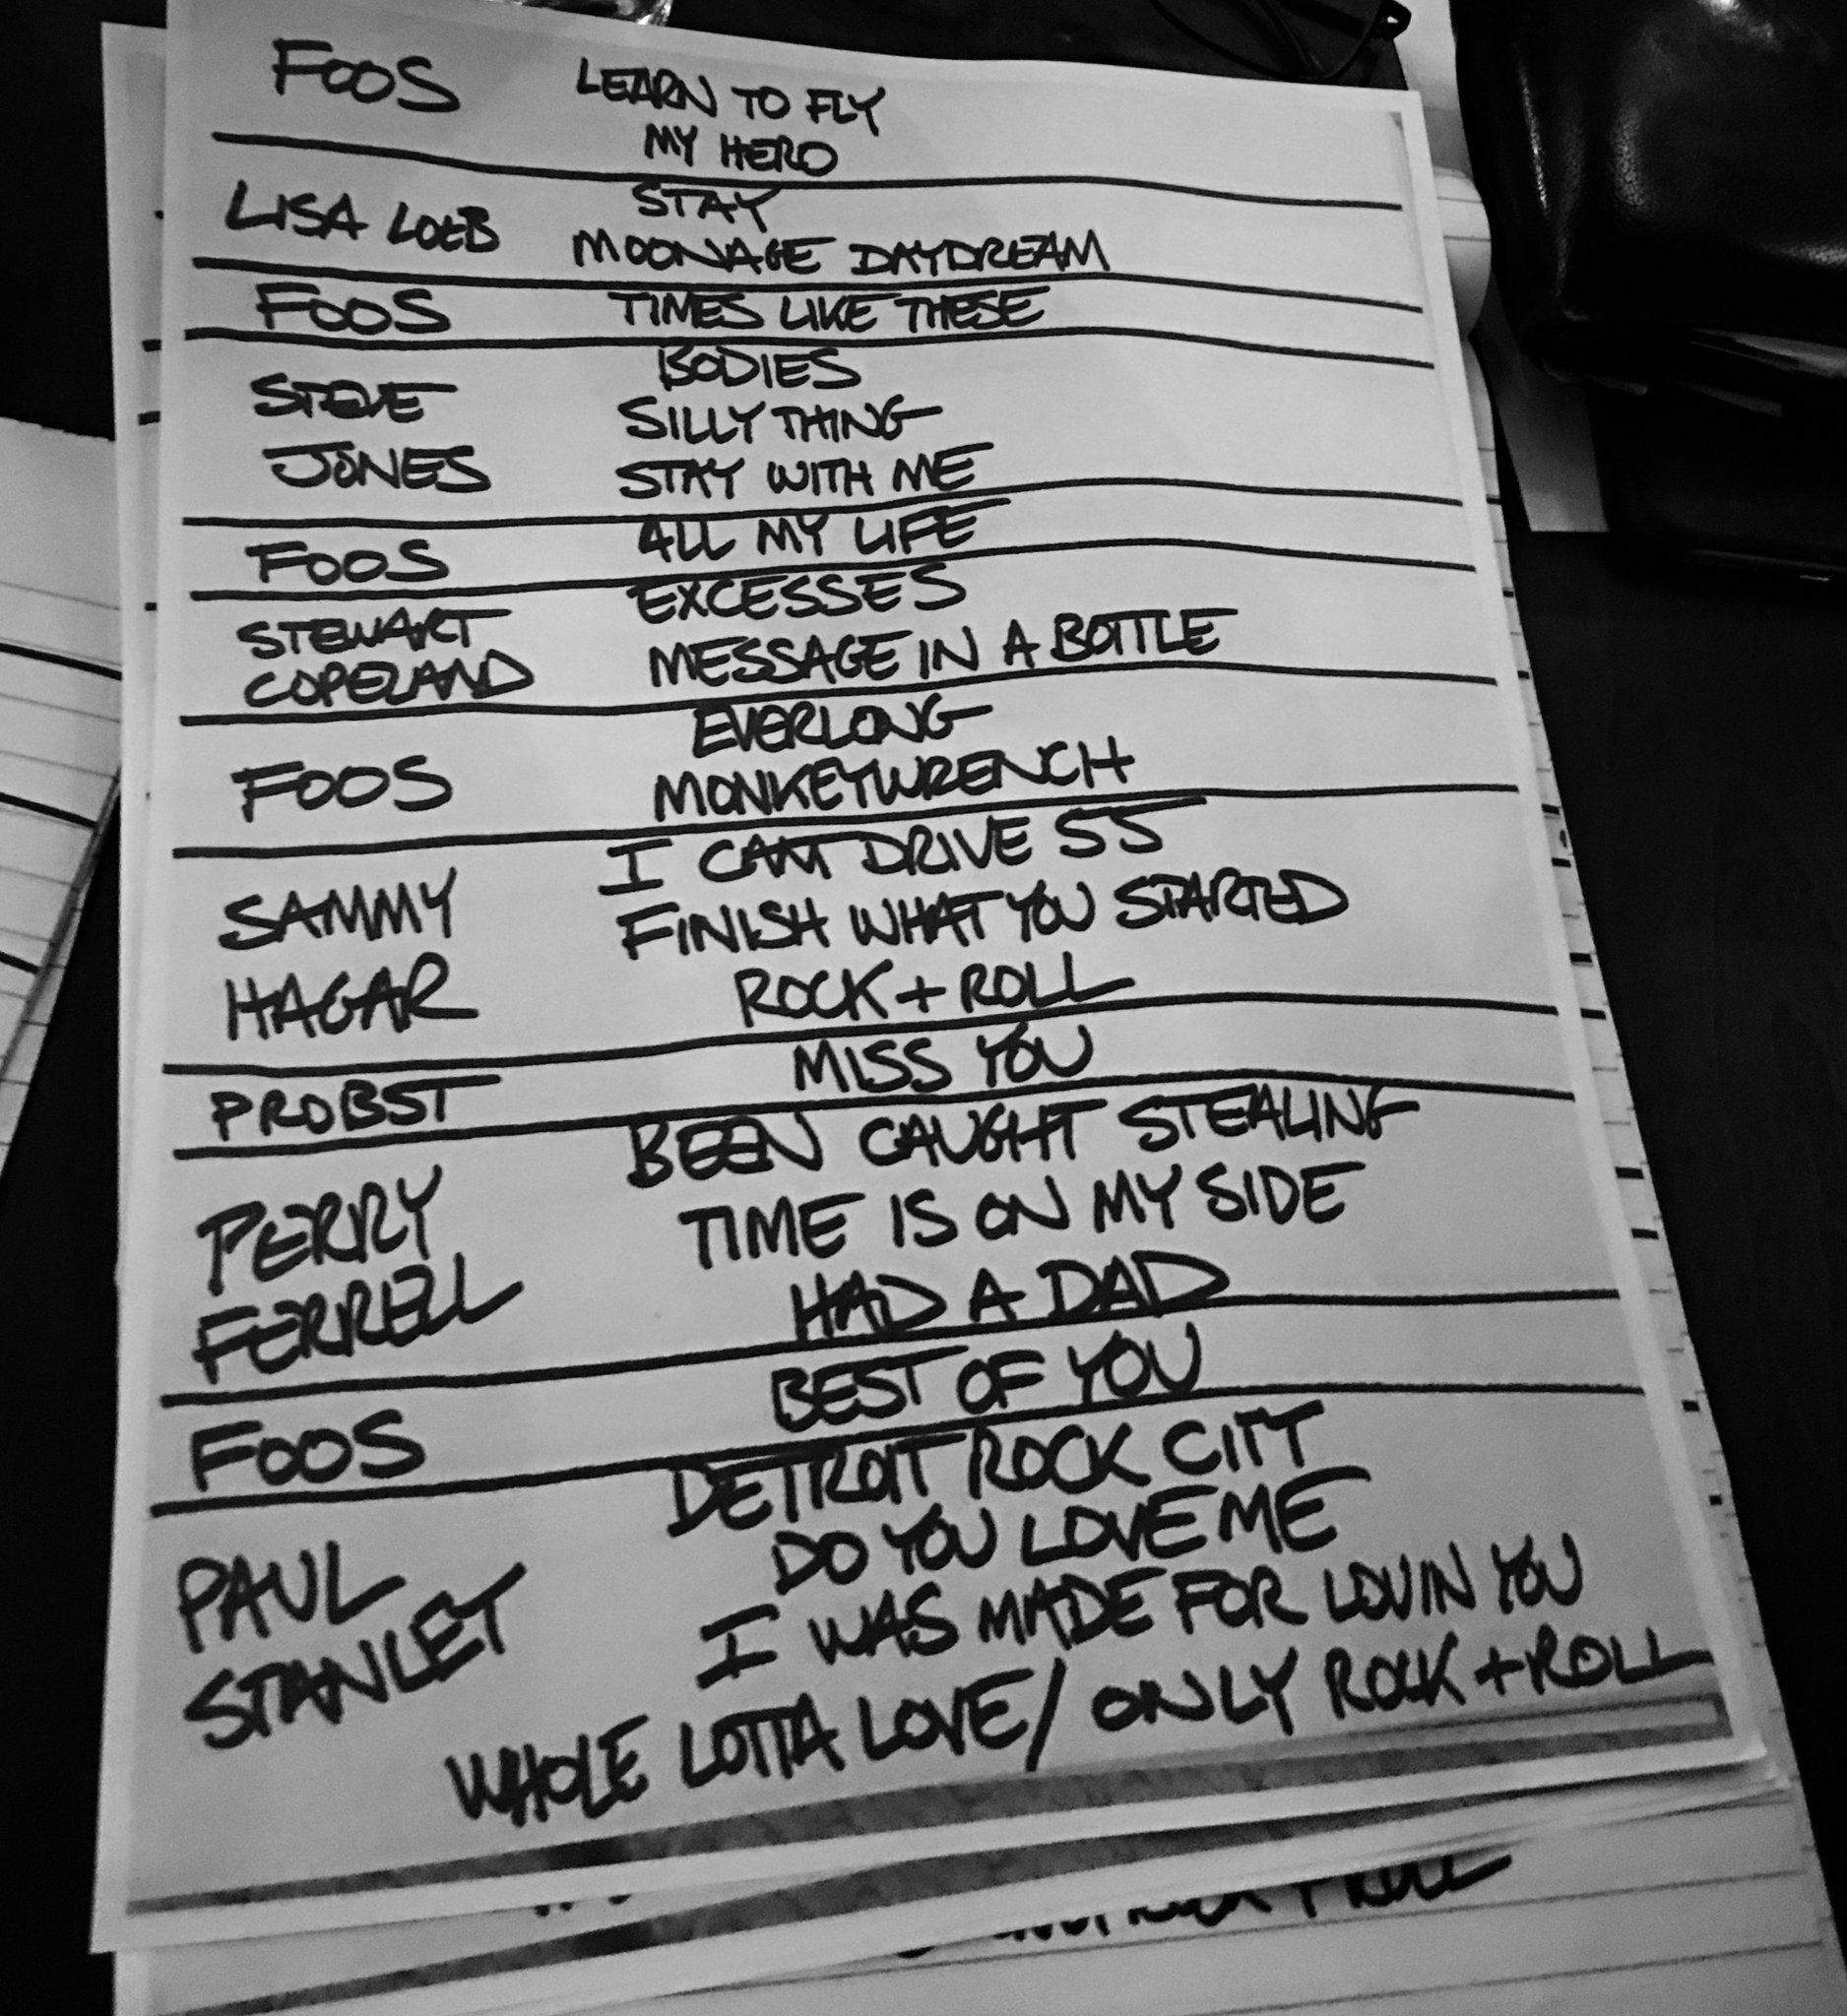 Sammy Hagar On Twitter Set List From Last Night S Dave Grohl Foofighters Charity Gig Yow Rockforgood Https T Co Chdguegmxc